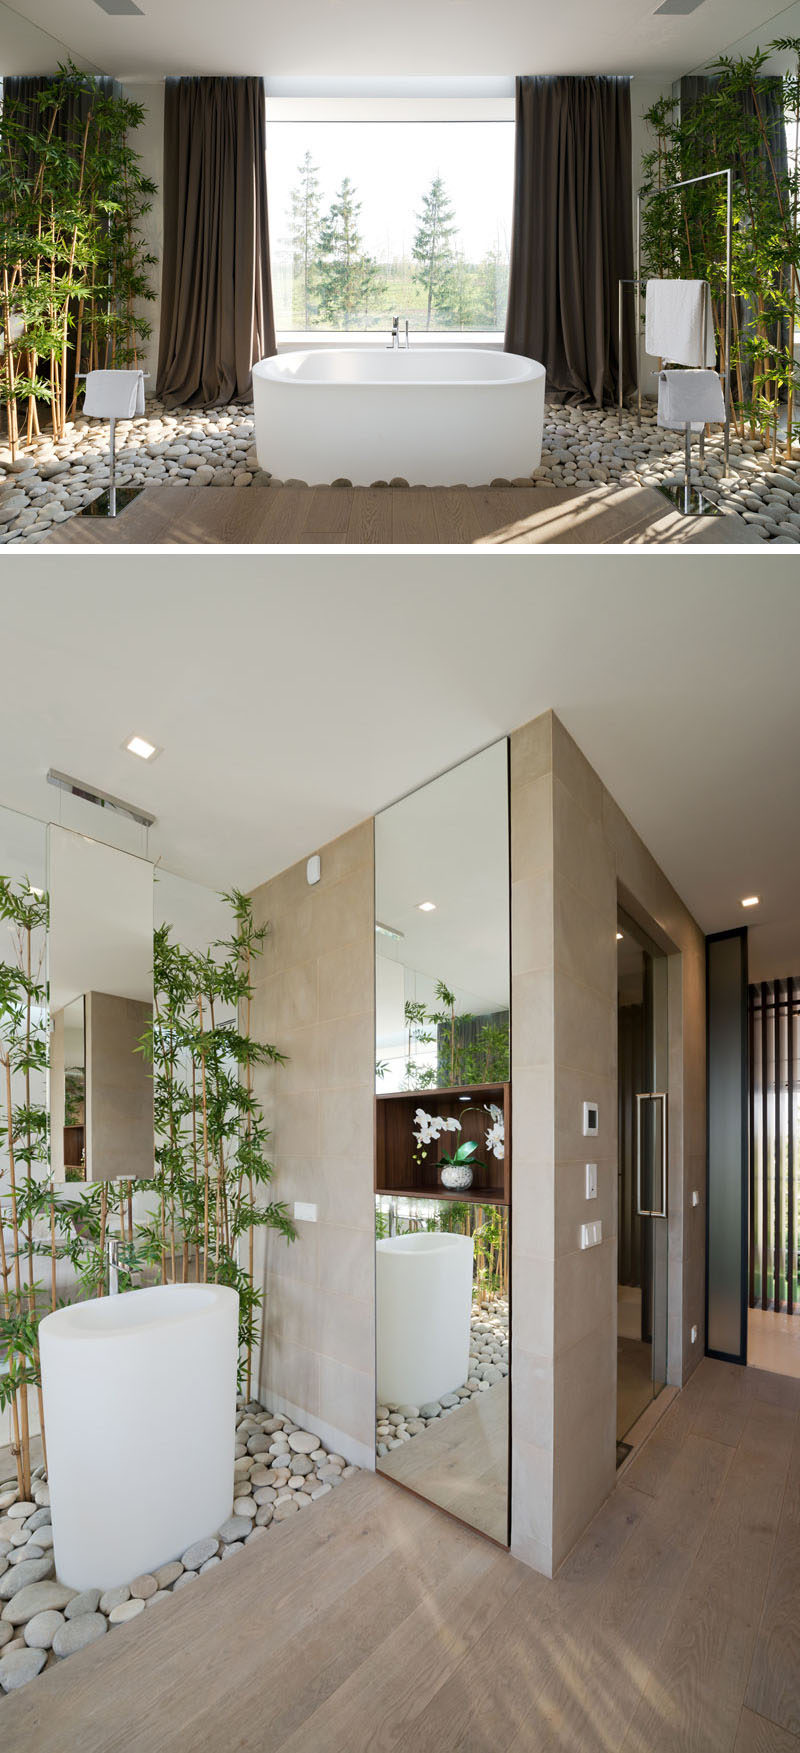 Bathroom Design Idea - Create a Spa-Like Bathroom At Home // Include touches of nature.